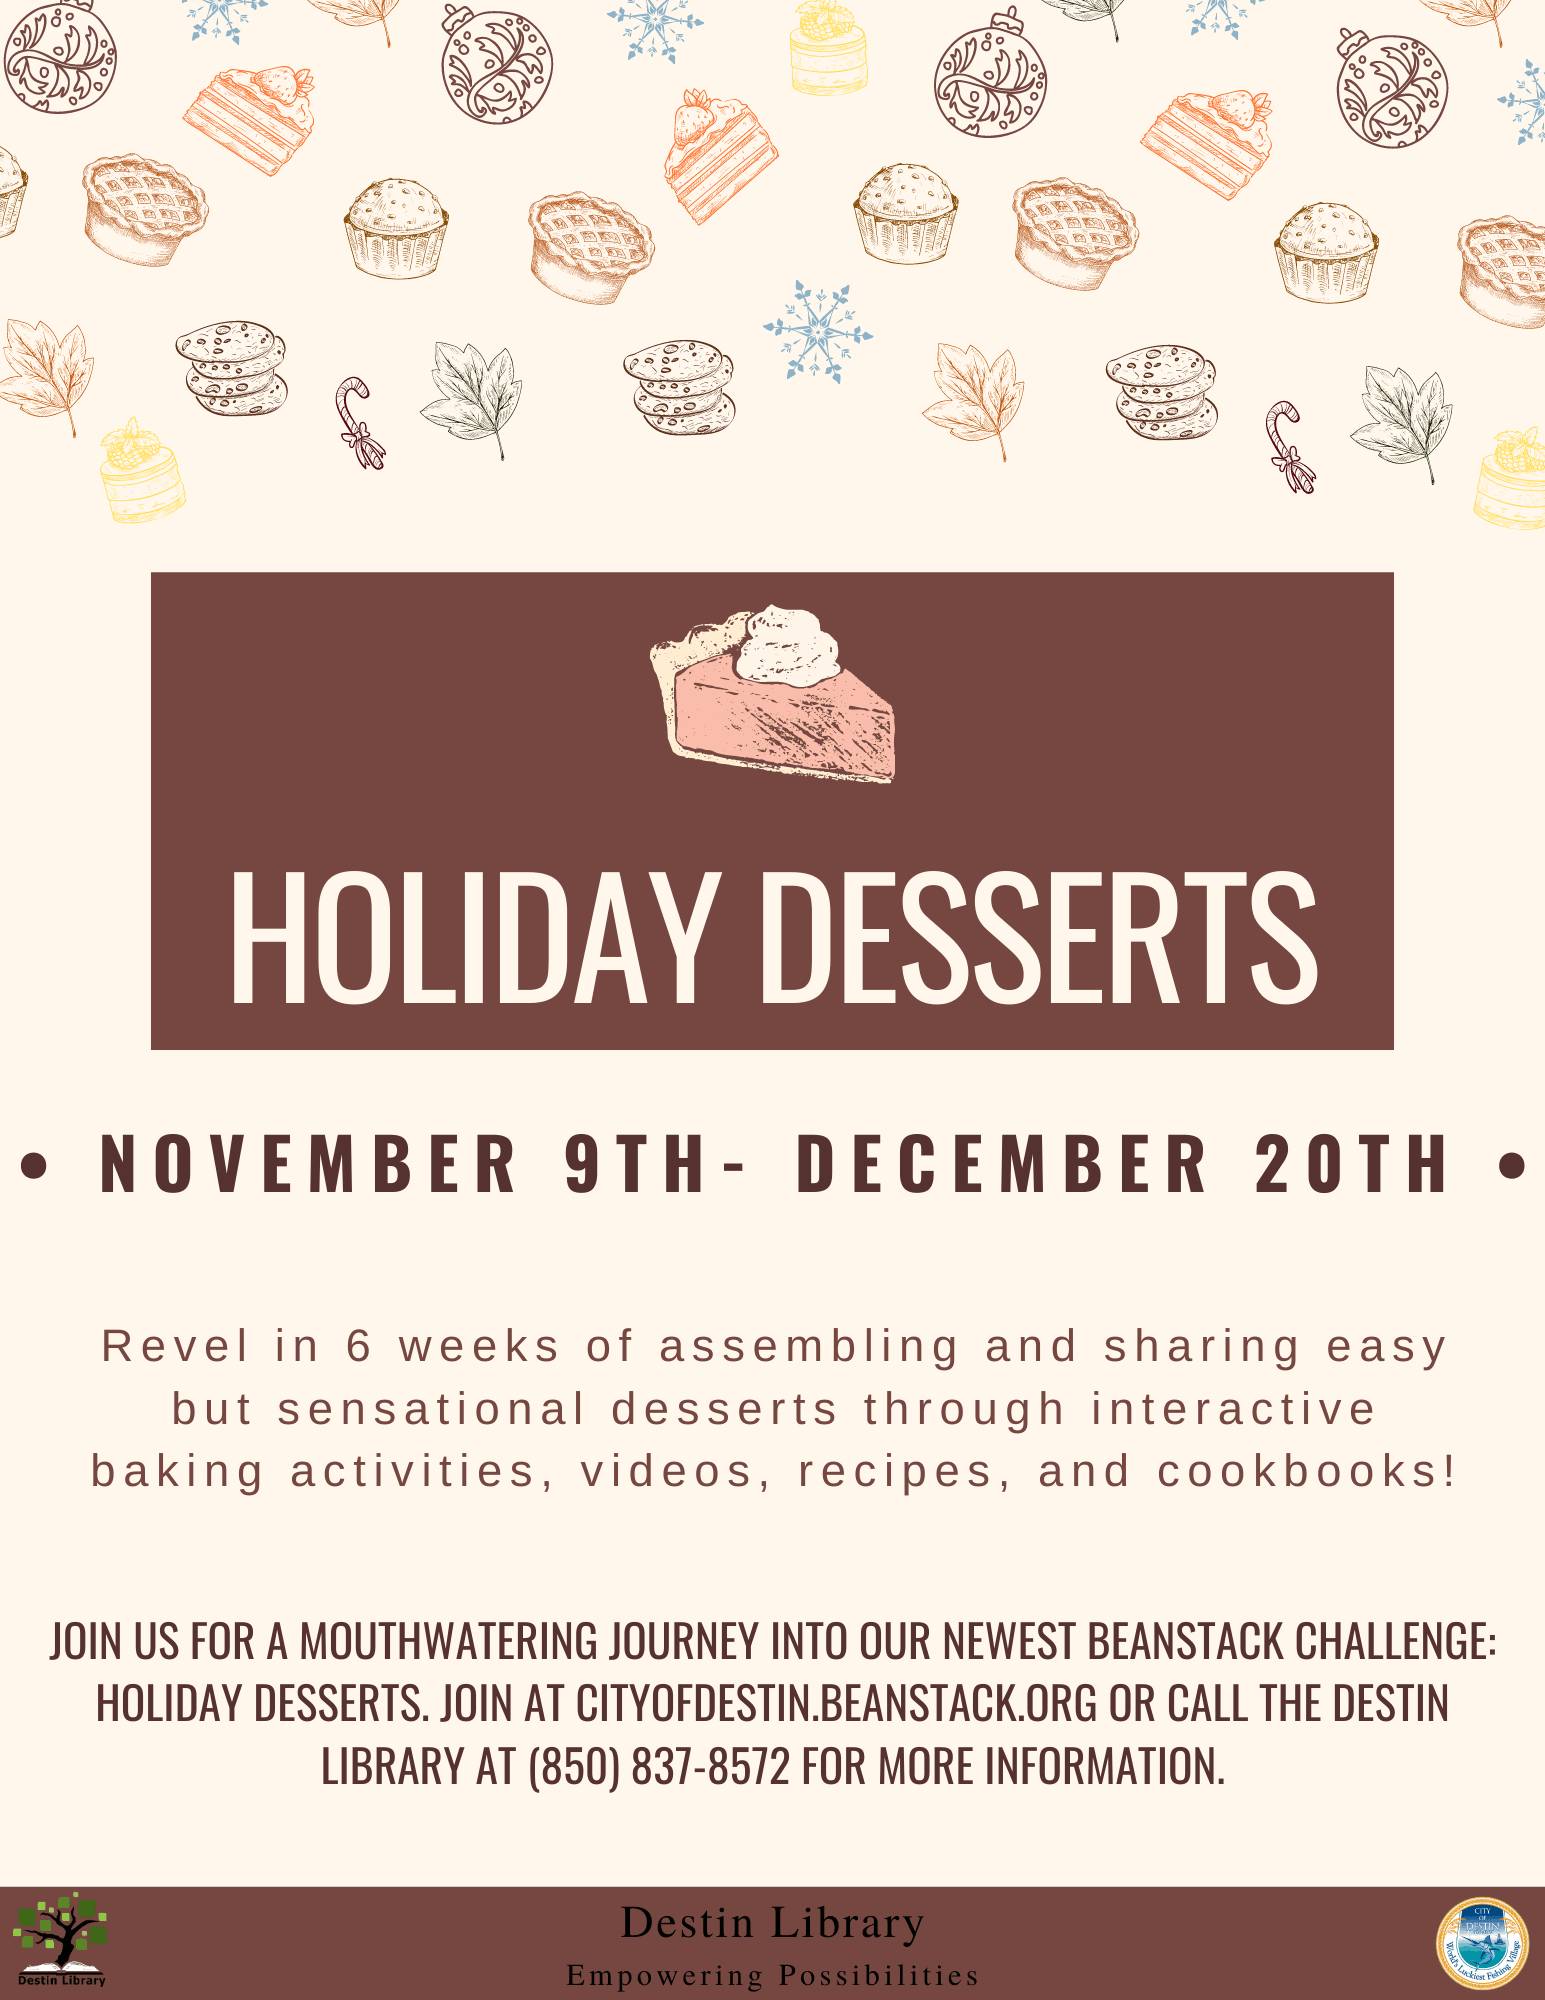 Holiday Desserts Program Information